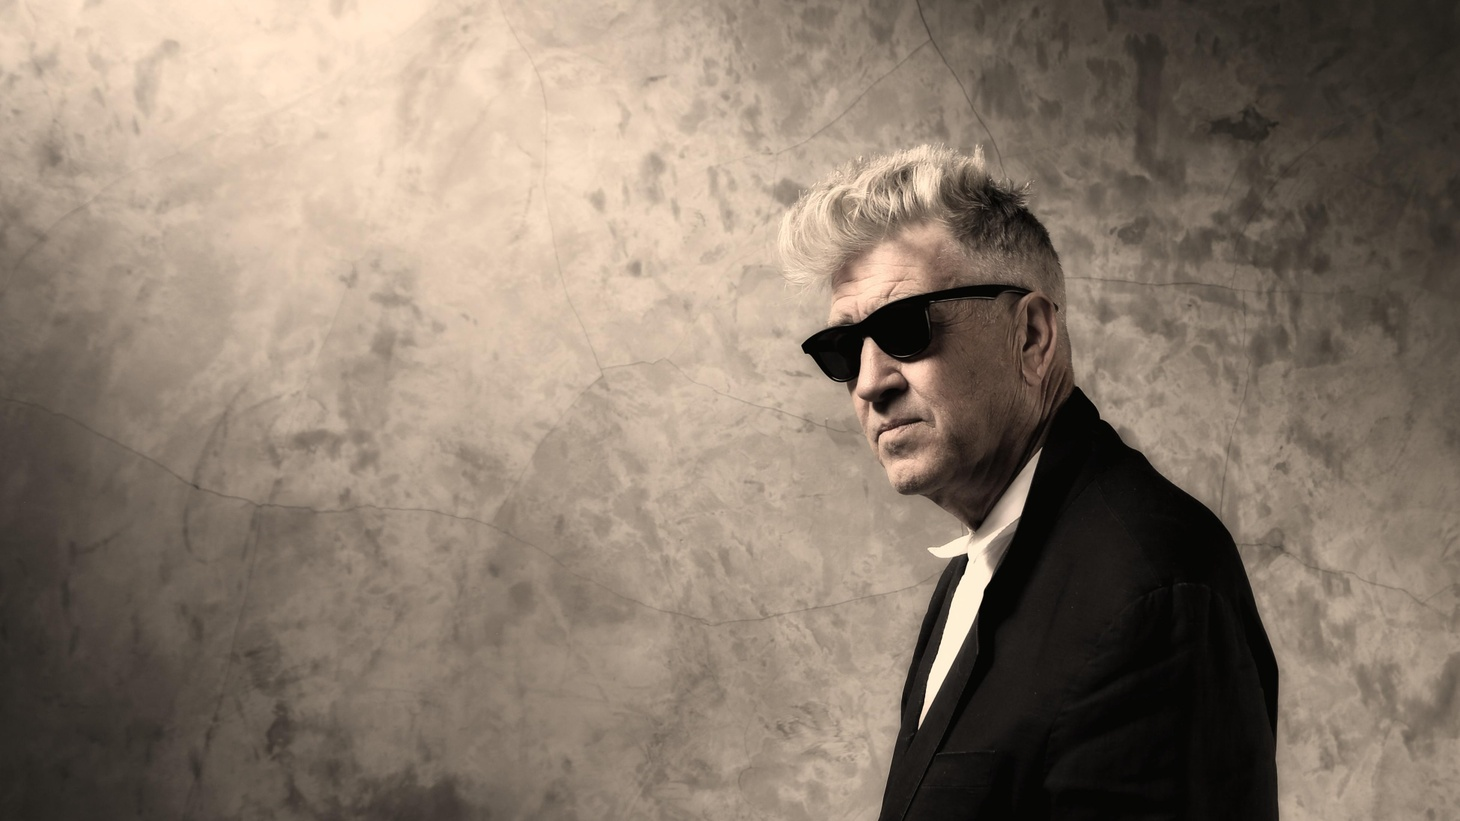 Film director and renaissance man David Lynch sparks the imagination via his film work and helps us create our own images through his music.